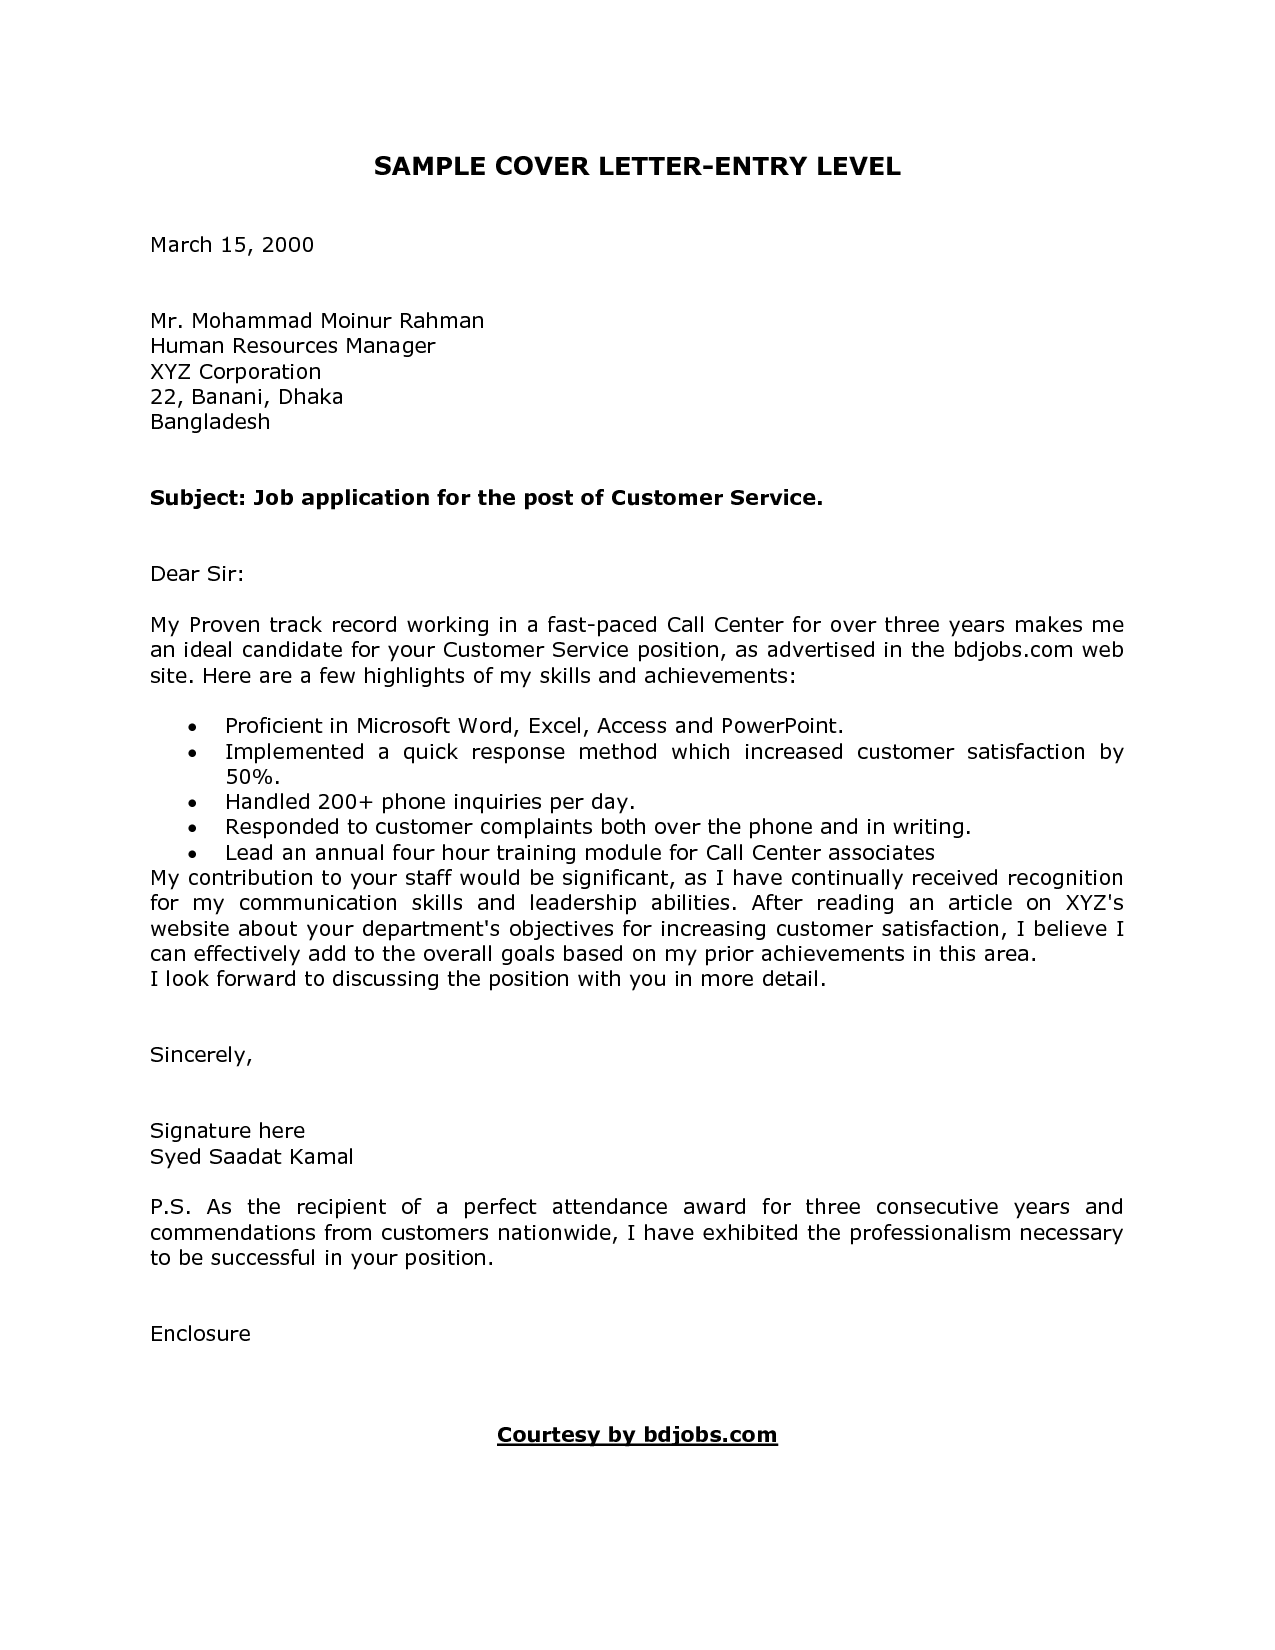 how to write a good cover letter for resume Parlobuenacocinaco